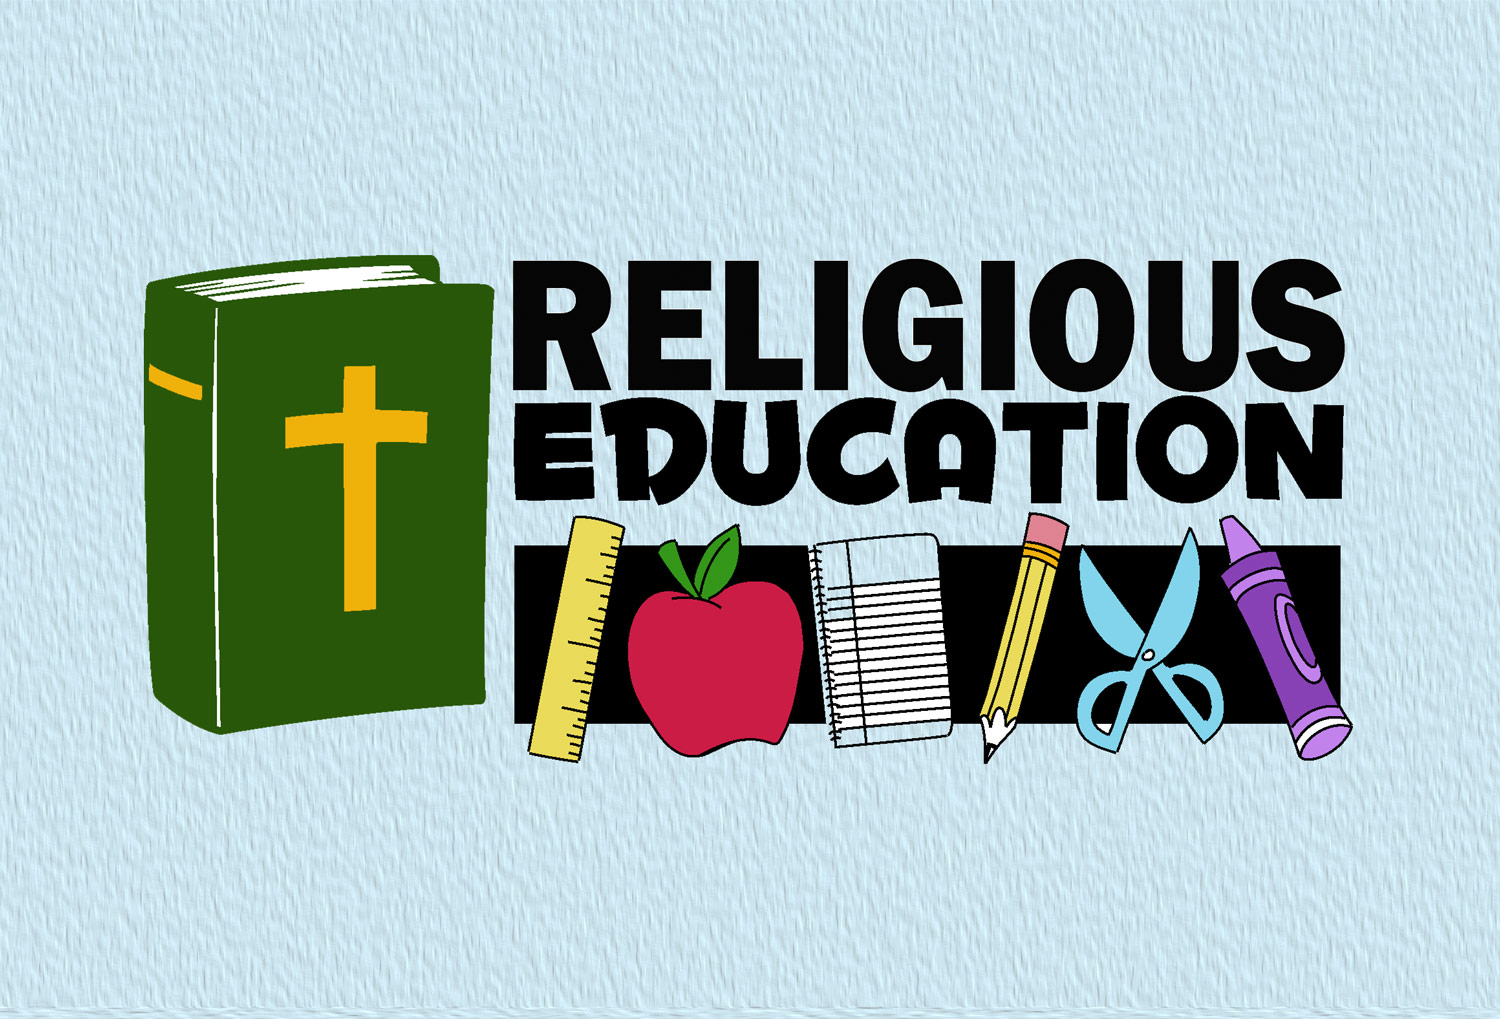 Guidelines for Religious Education